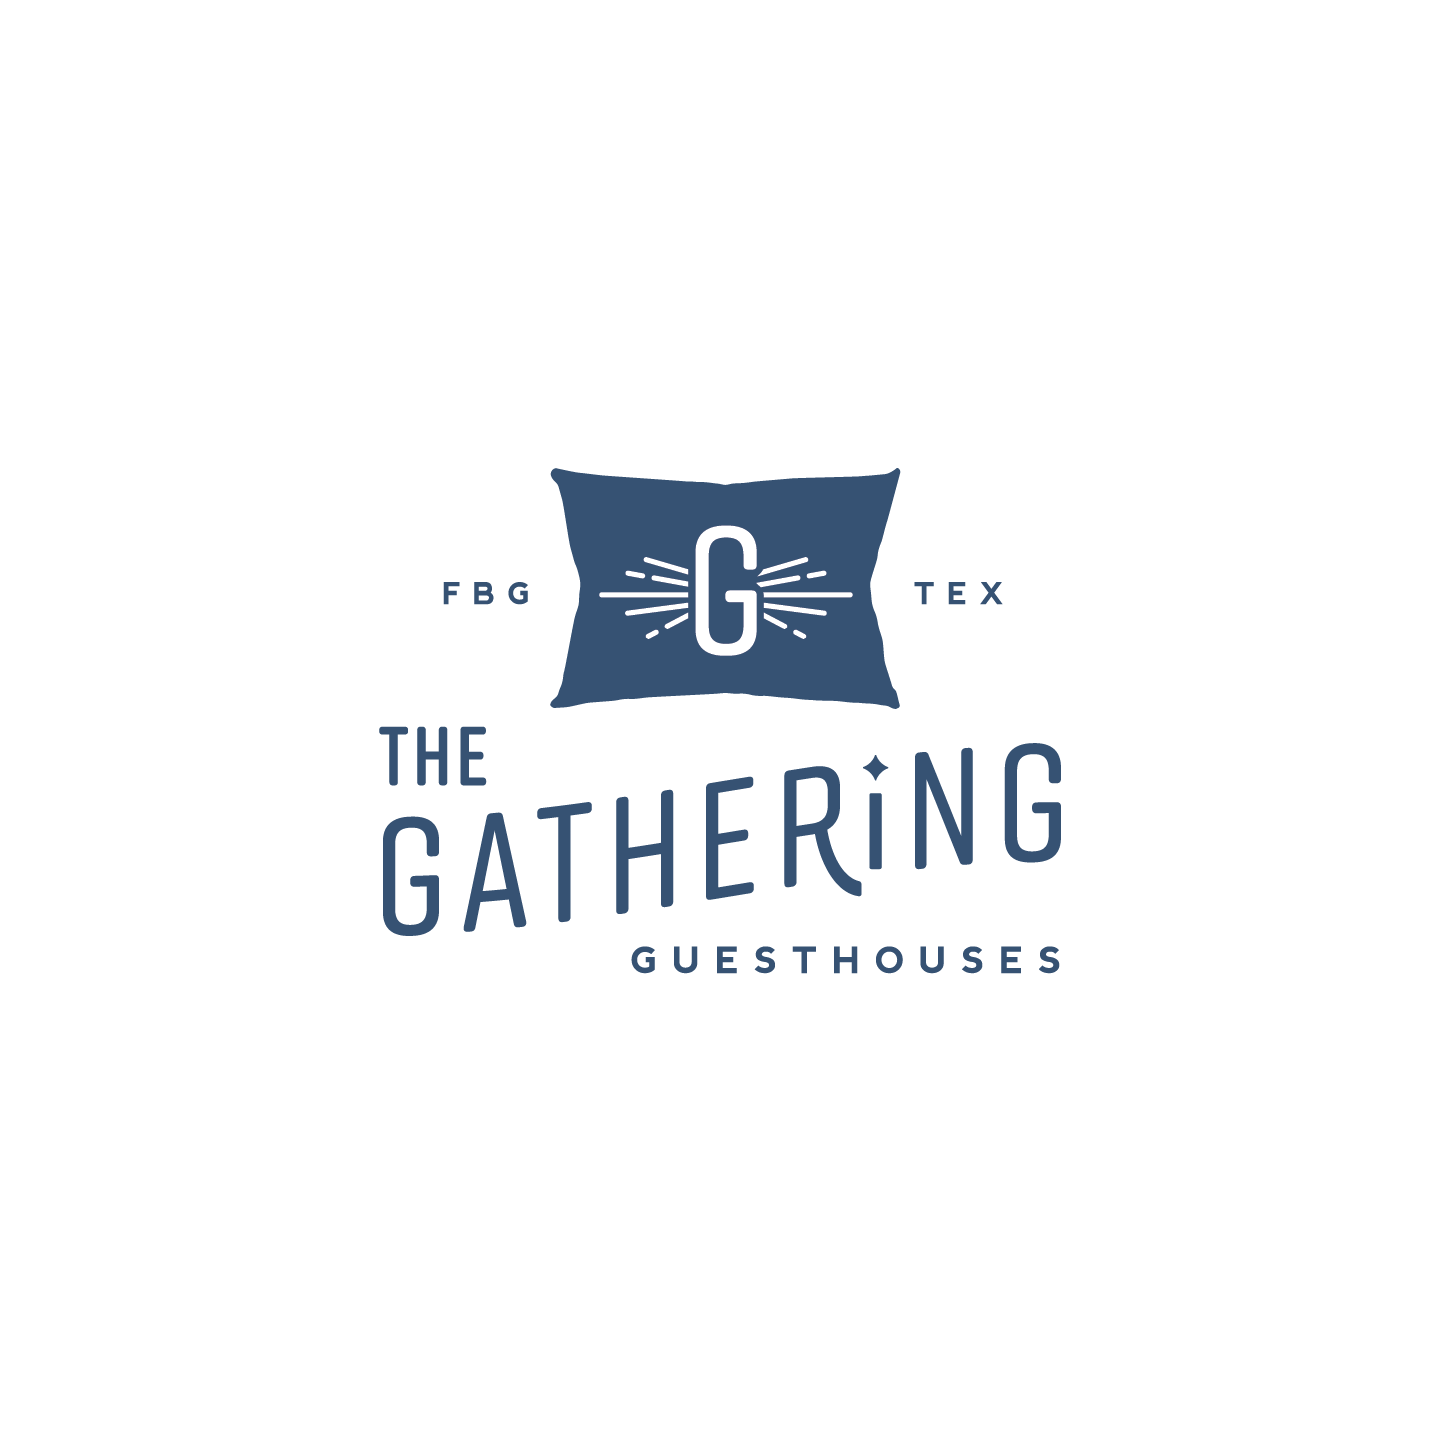 The-Gathering-Gradient-2.png